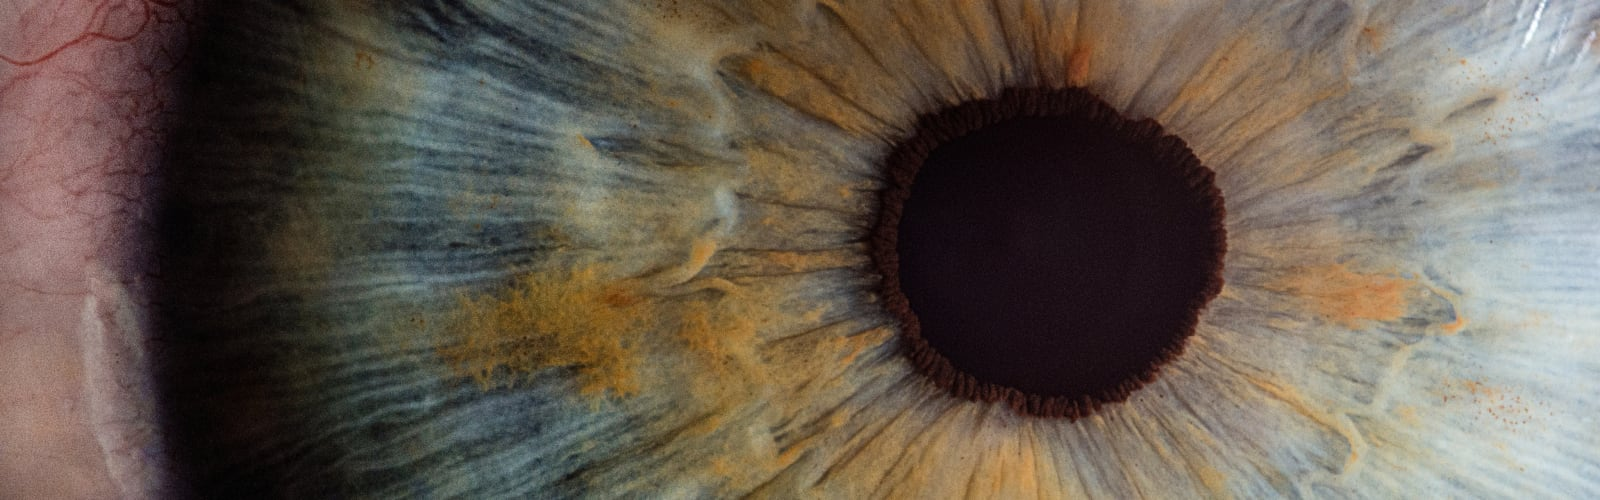 Retinal eye diseases